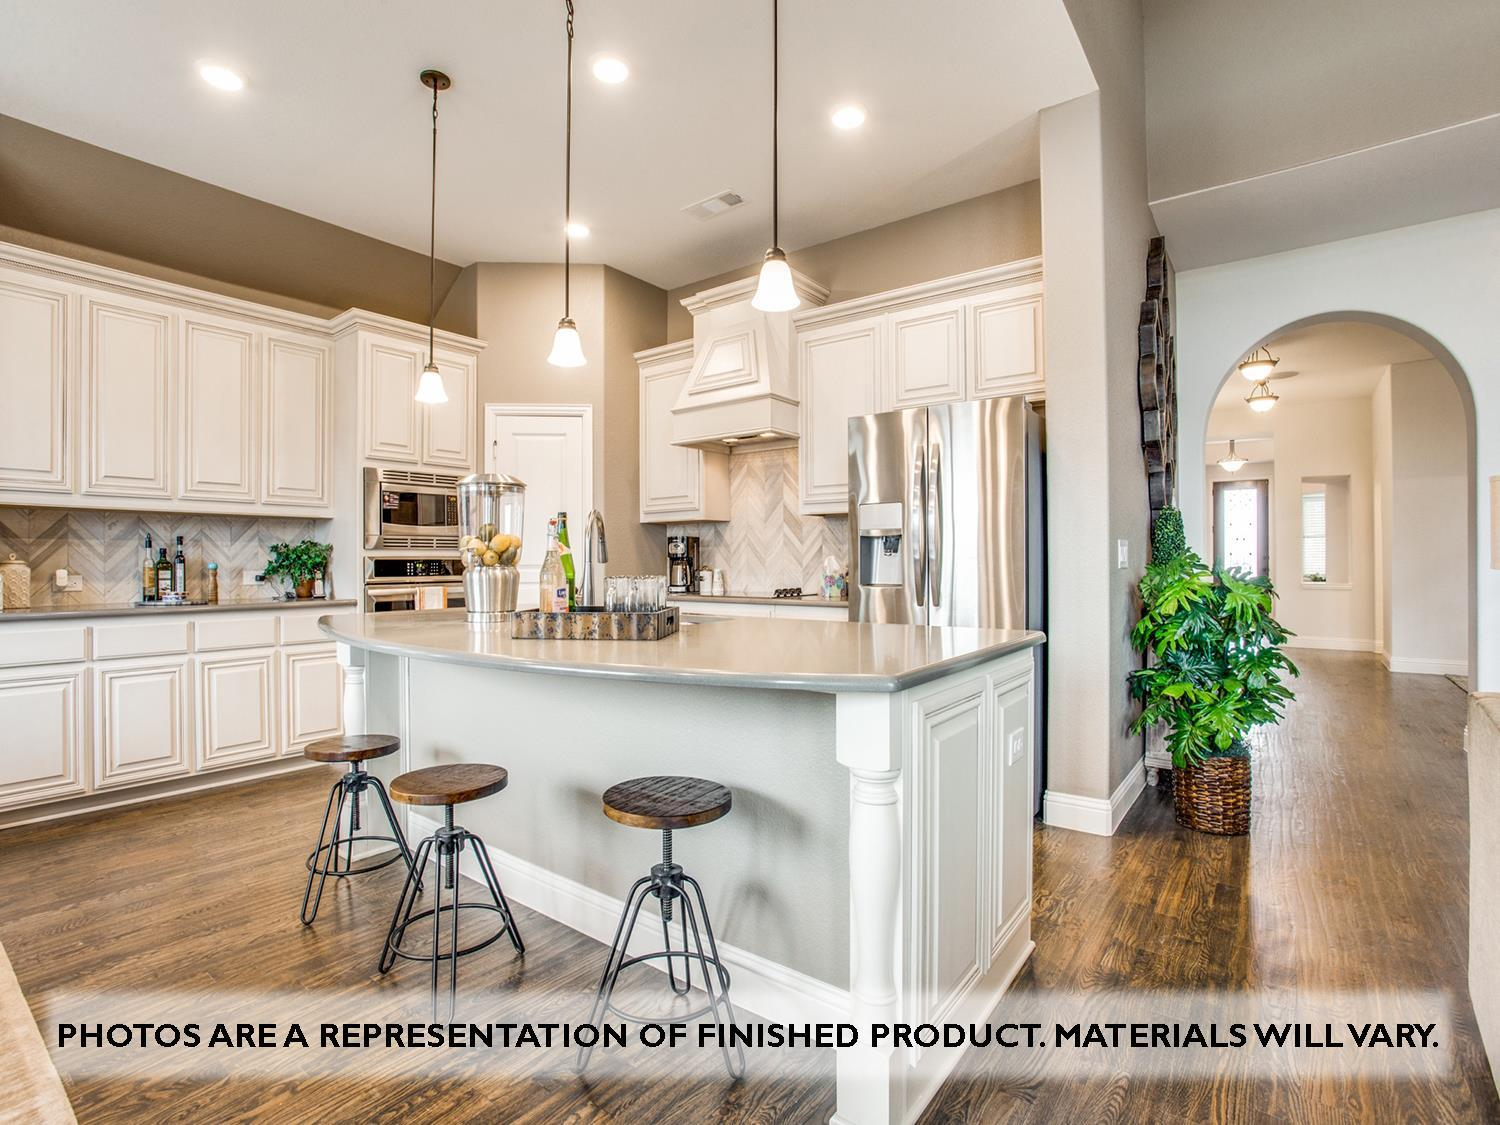 Kitchen featured in the Primrose FE VI By Bloomfield Homes in Dallas, TX